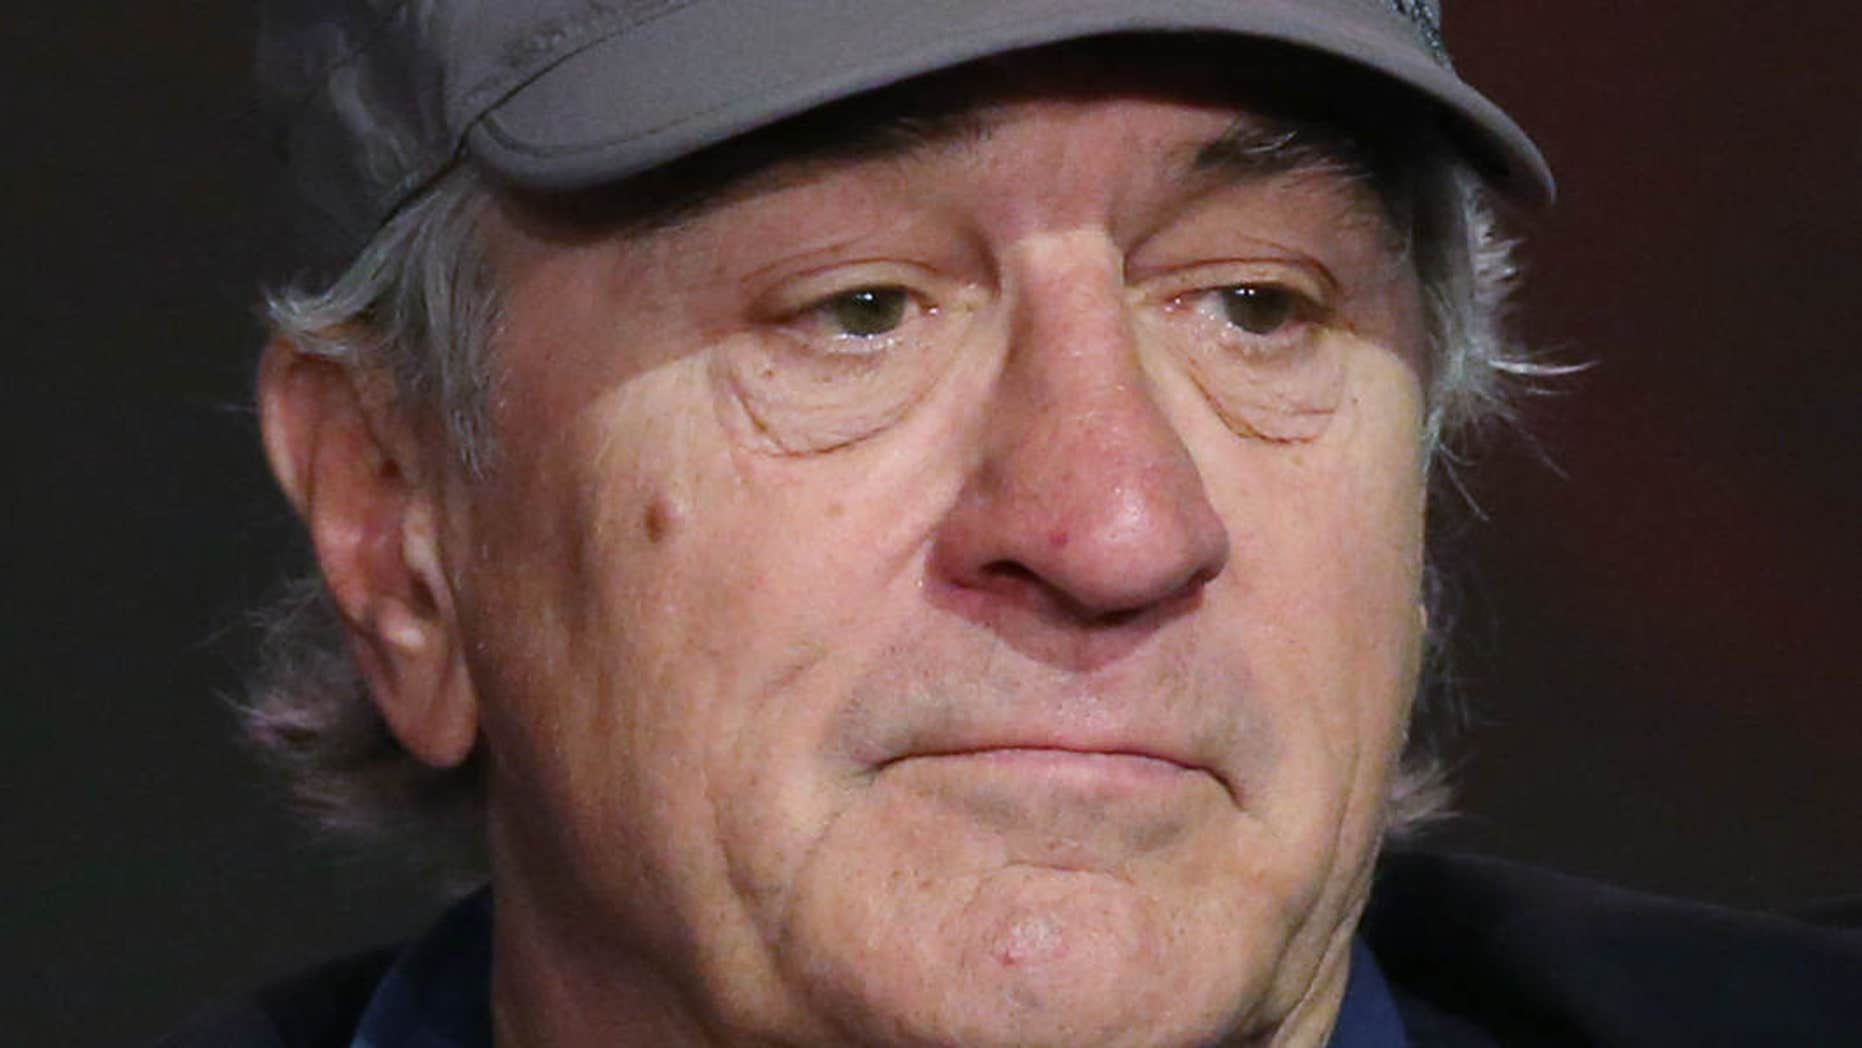 FILE - In this Tuesday, Oct. 27, 2015 file photo, Robert De Niro attends a news conference in Macau.